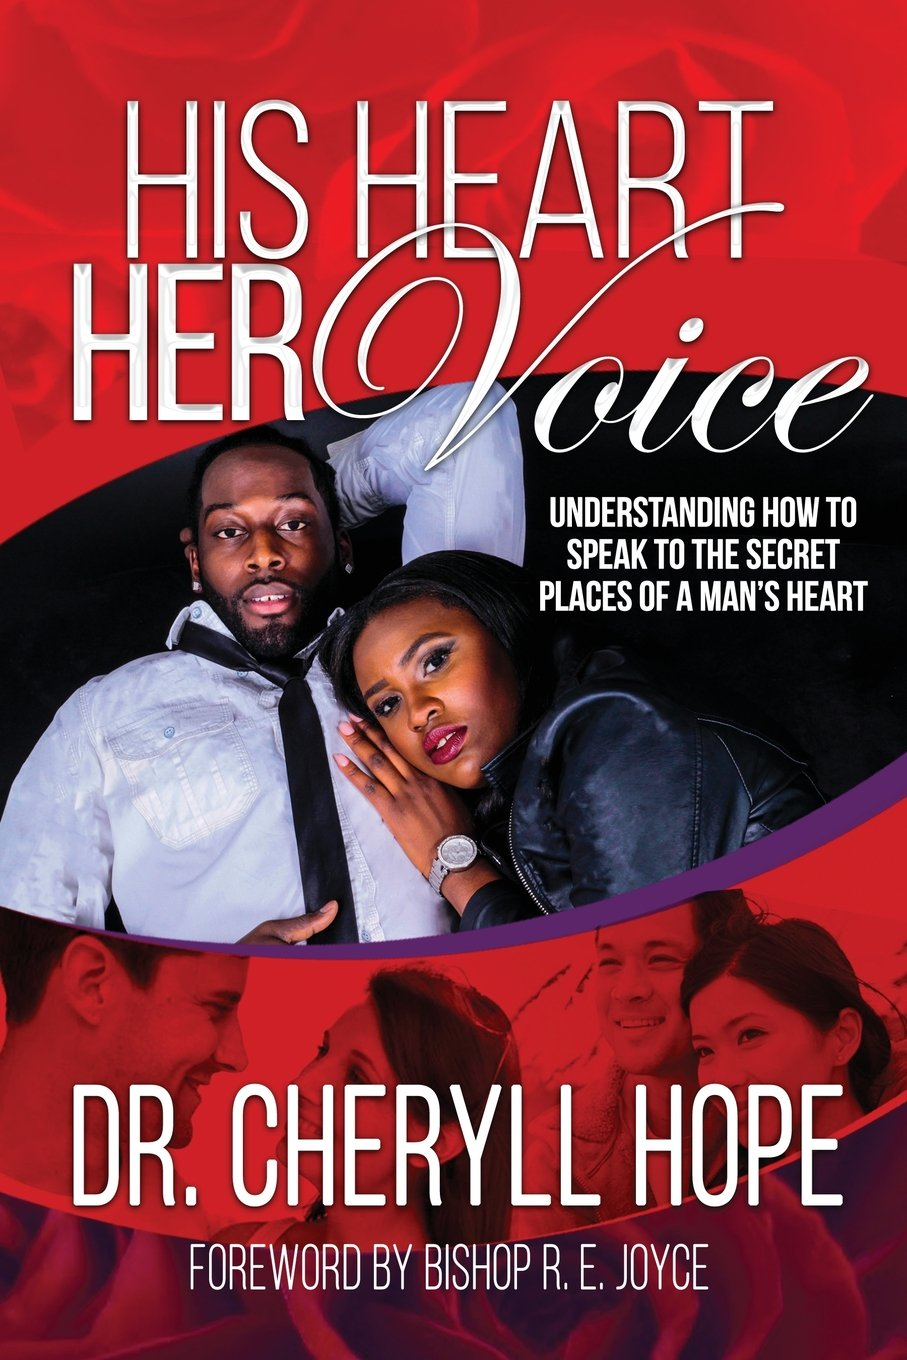 His Heart Her Voice: Understanding How to Speak to the Secret Places of a Man's Heart